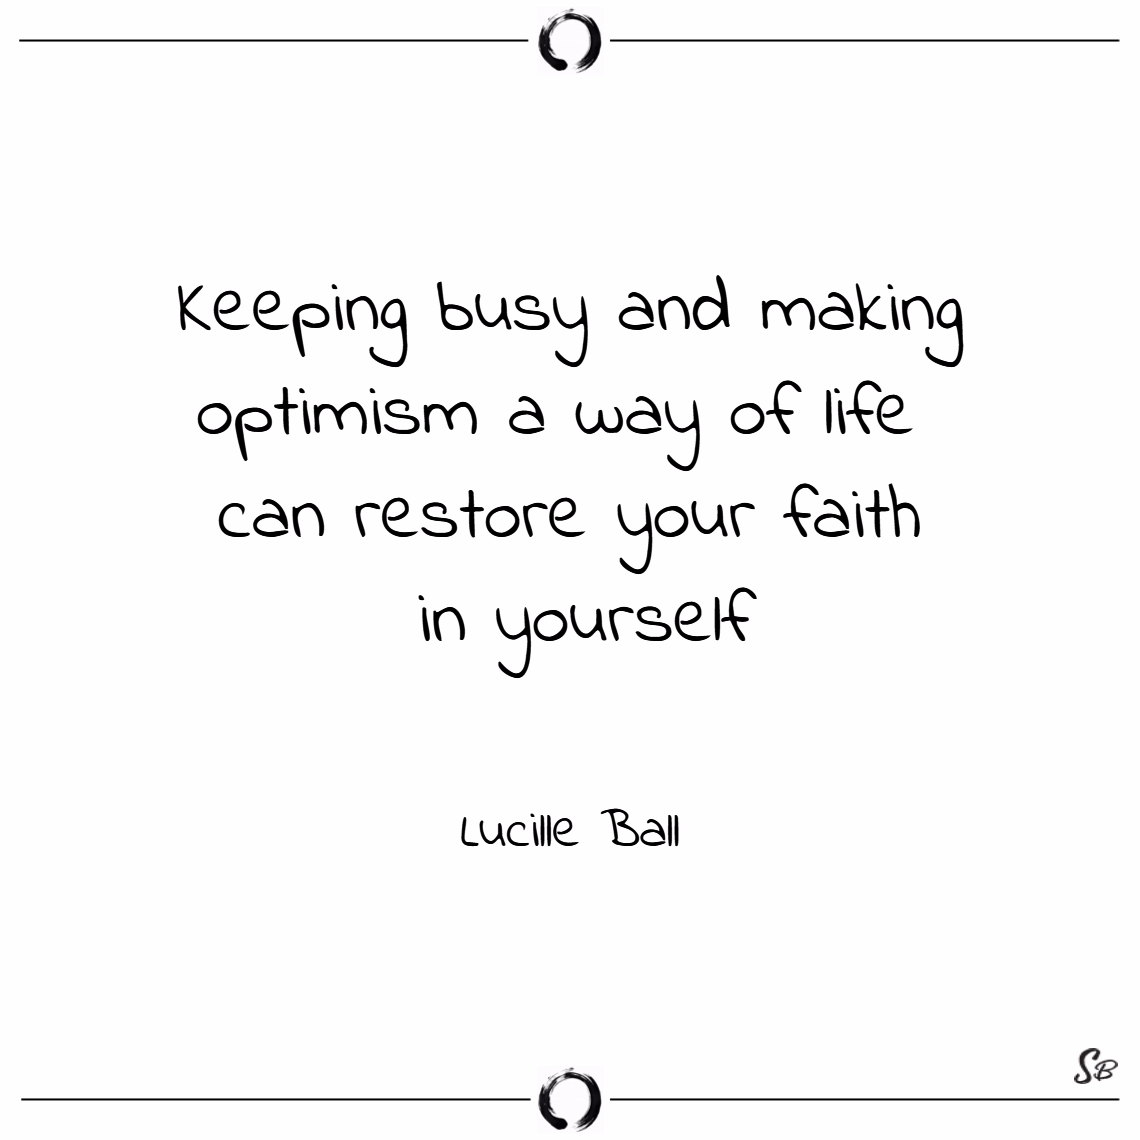 Keeping busy and making optimism a way of life can restore your faith in yourself. – lucille ball